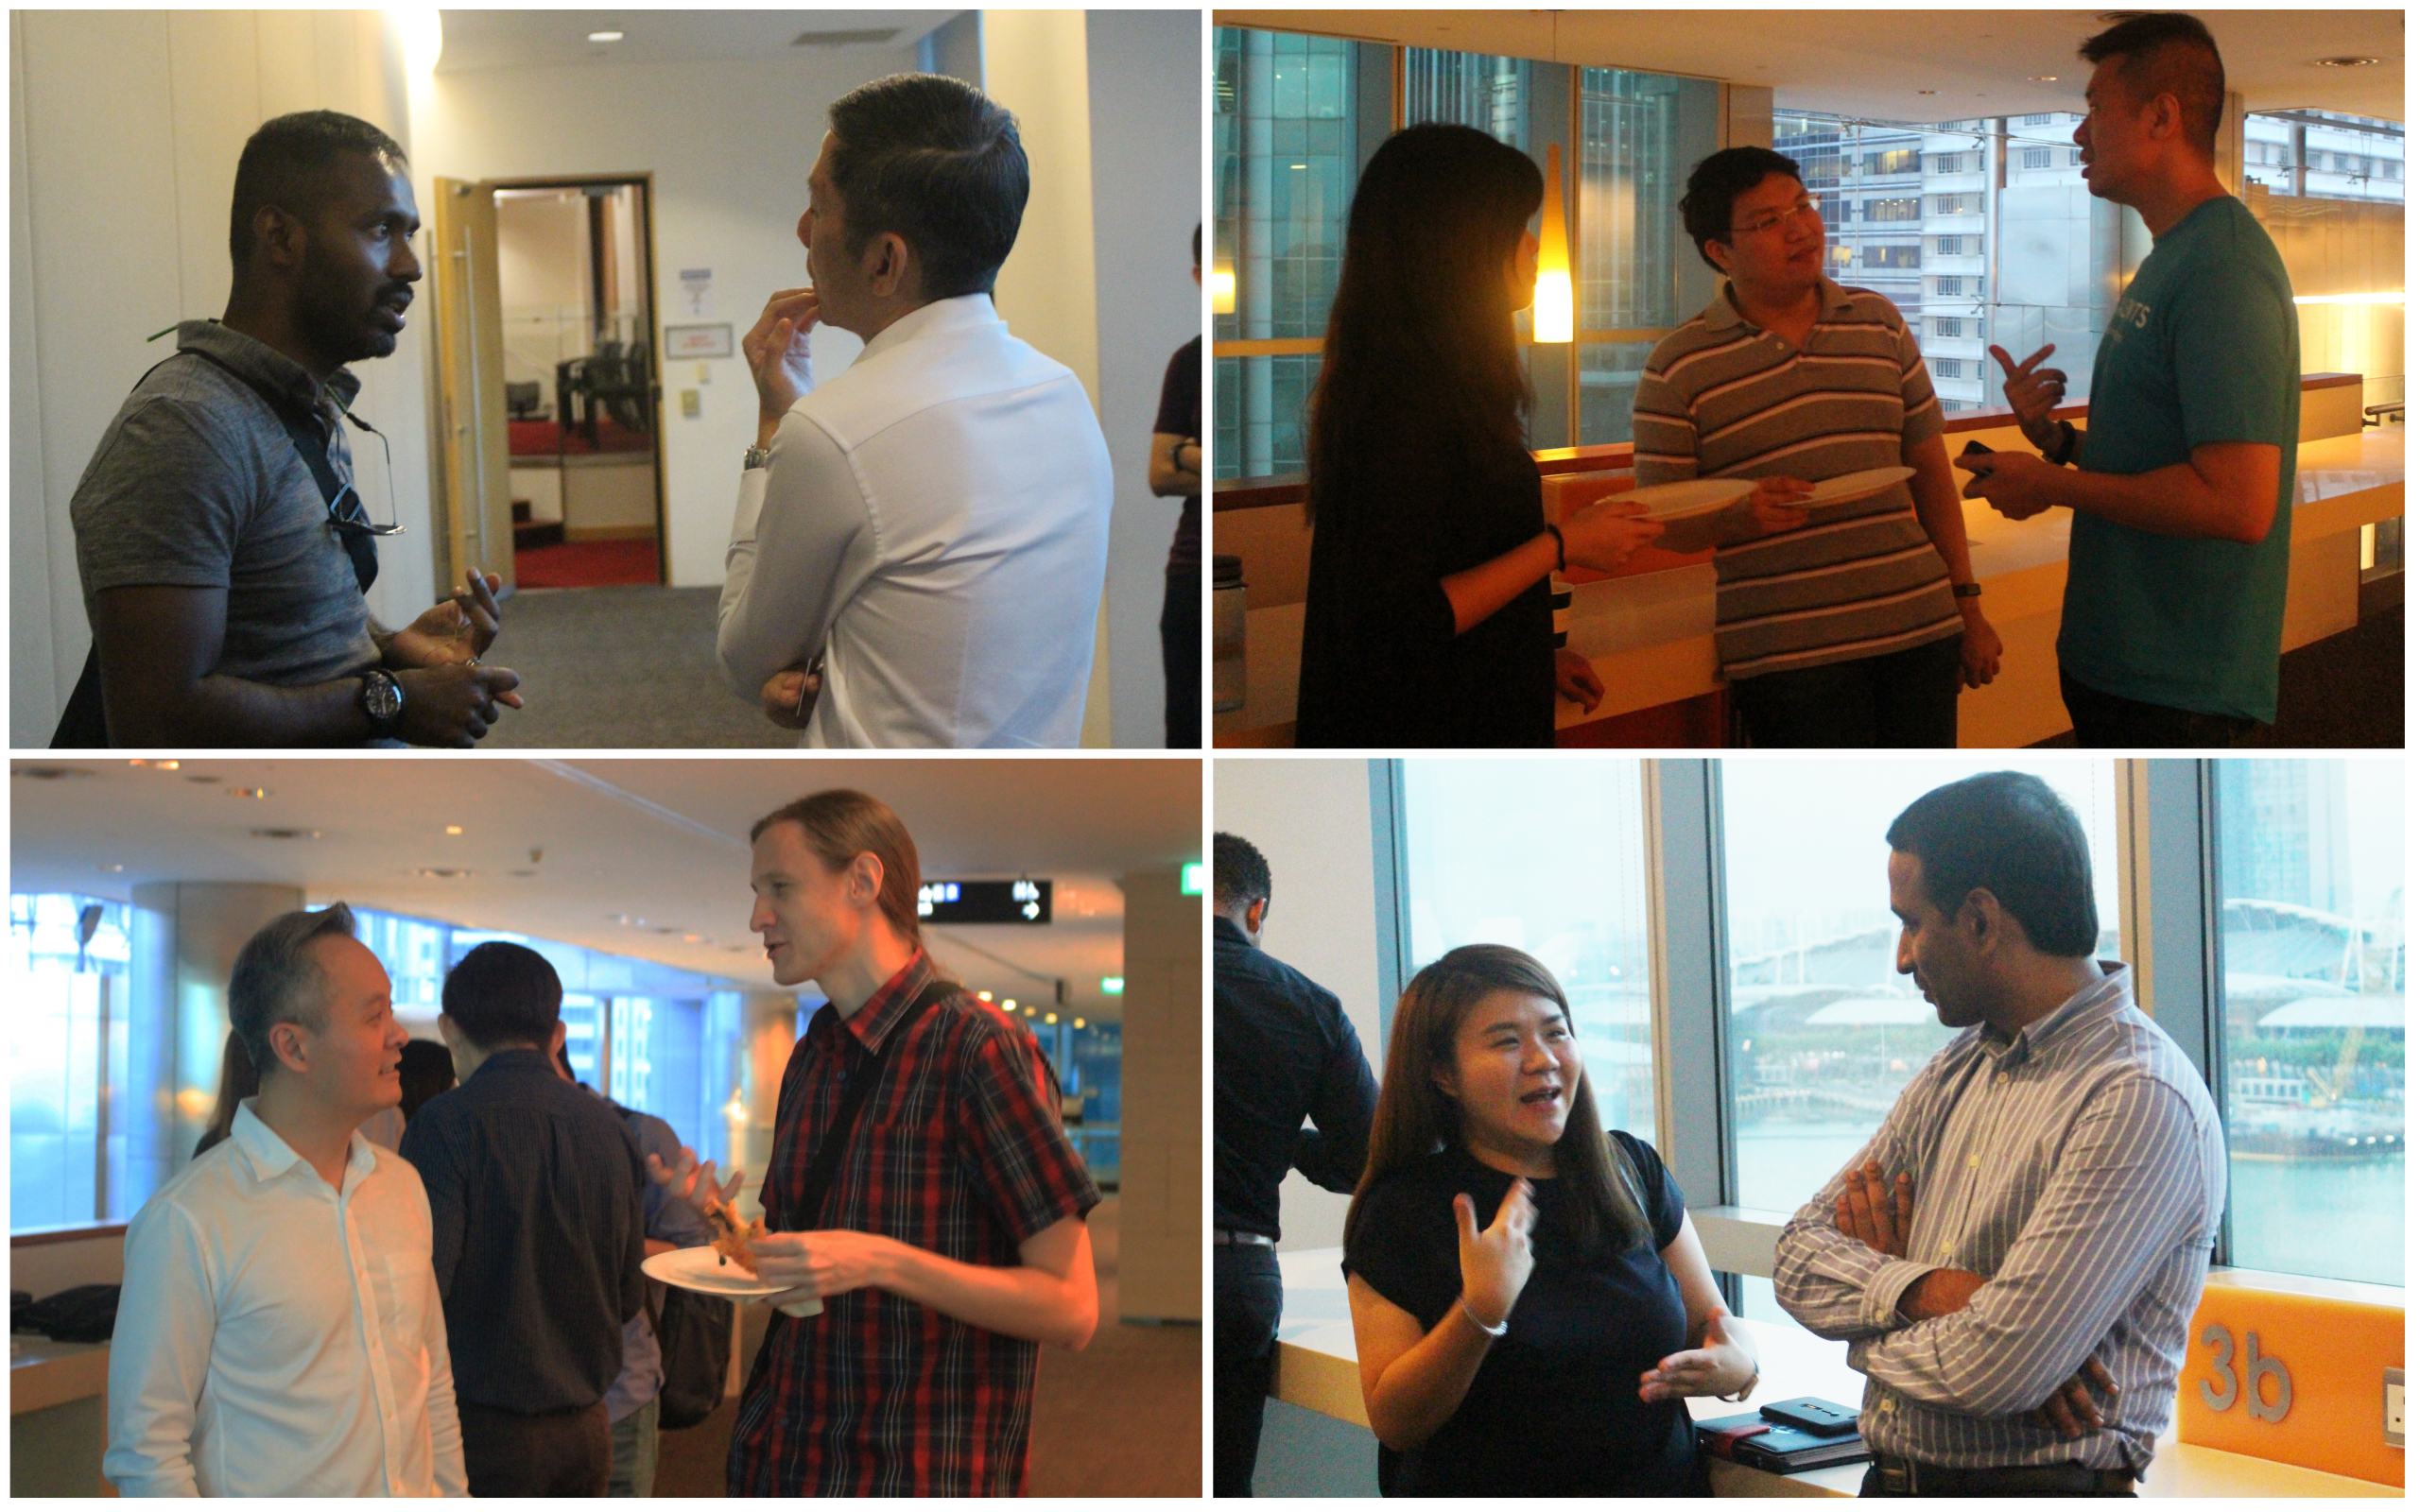 Event attendees doing networking during pre-event networking session.